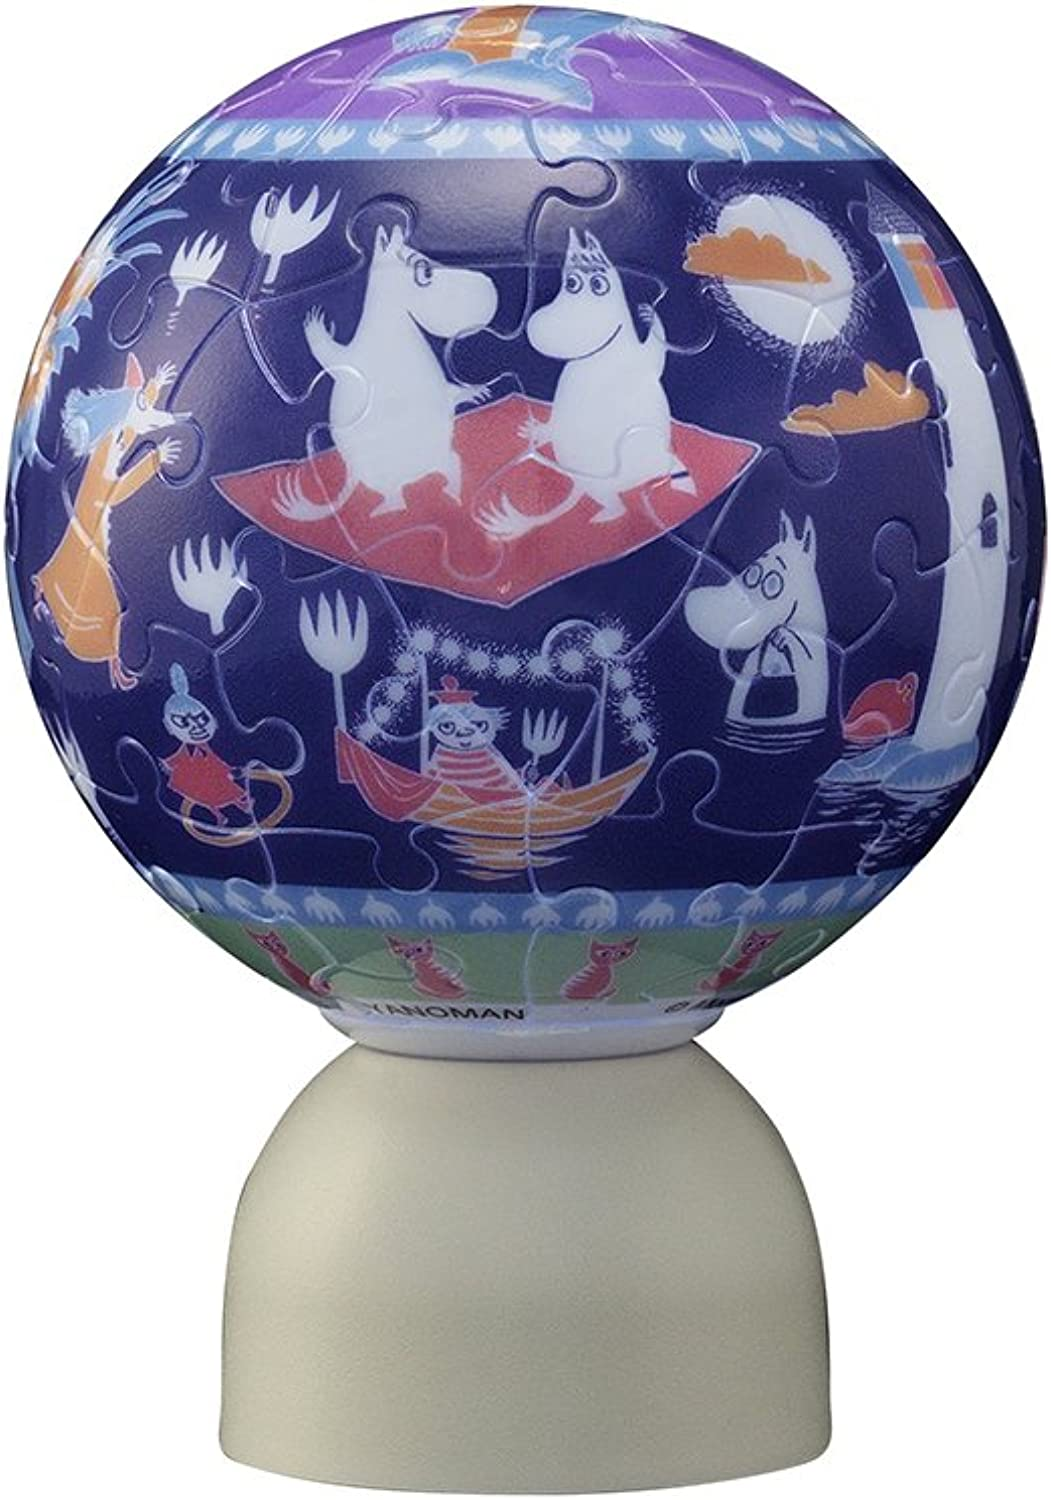 60 piece glowing sphere puzzle Pazurantan Moomin full moon night